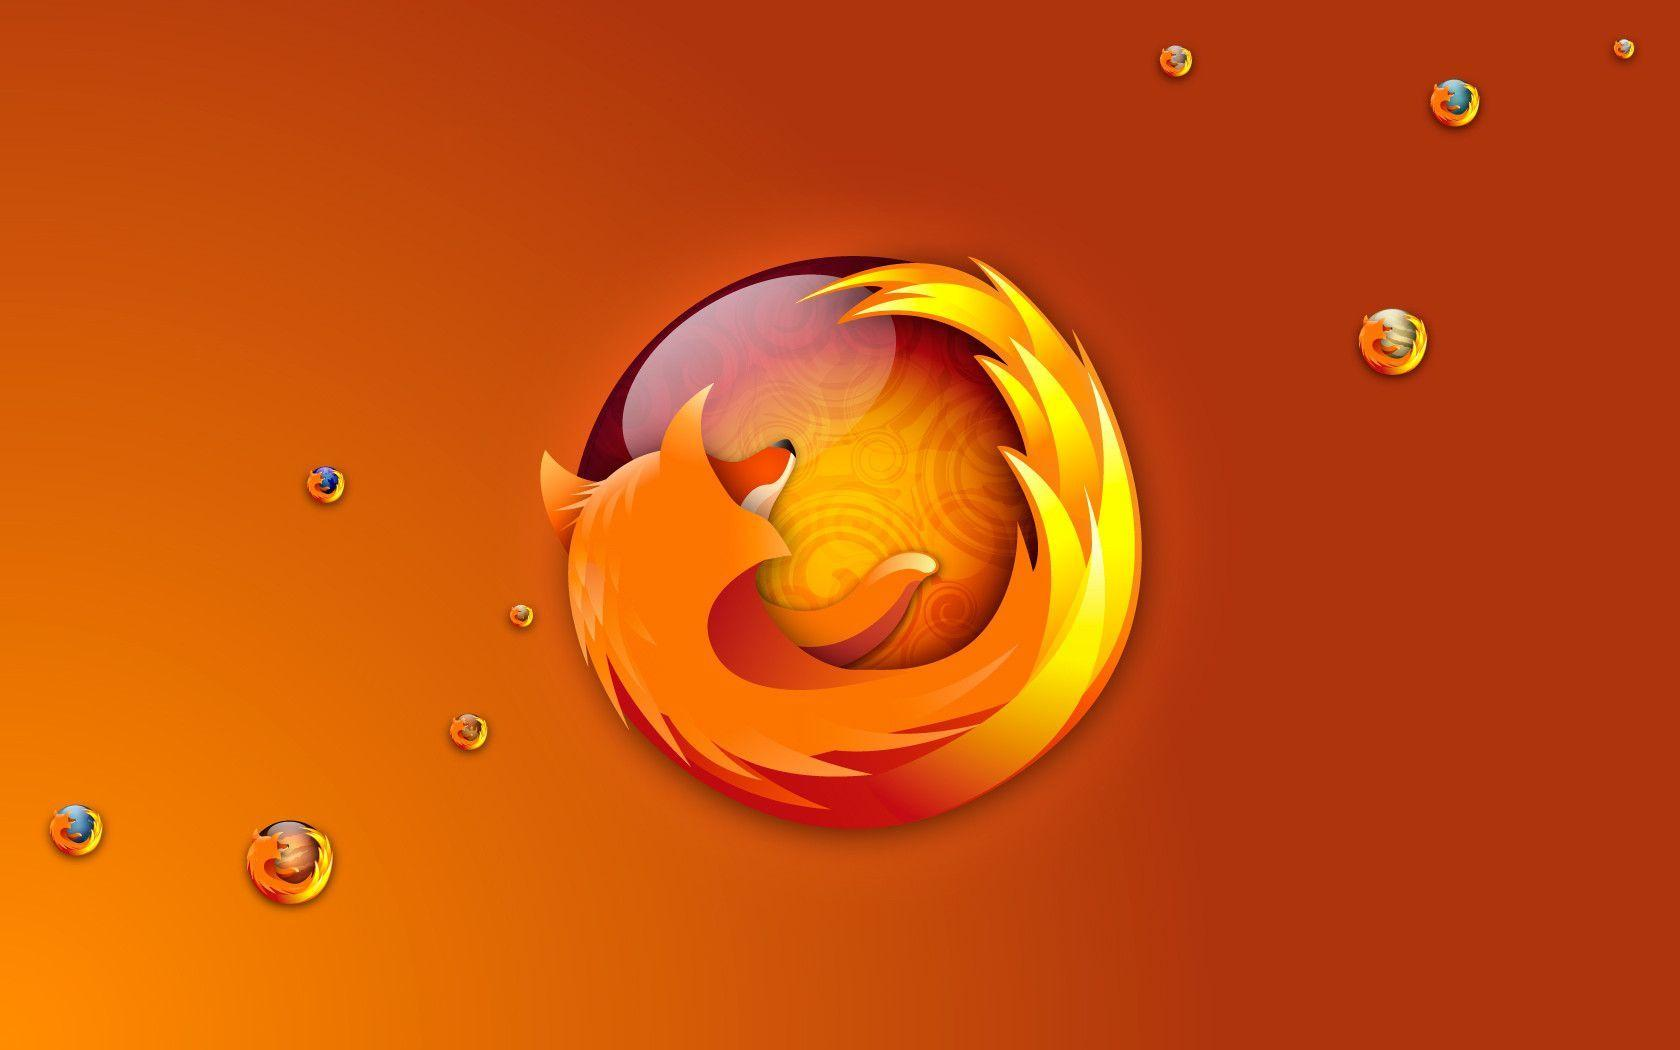 Firefox wallpapers wallpaper cave - How to change firefox background image ...